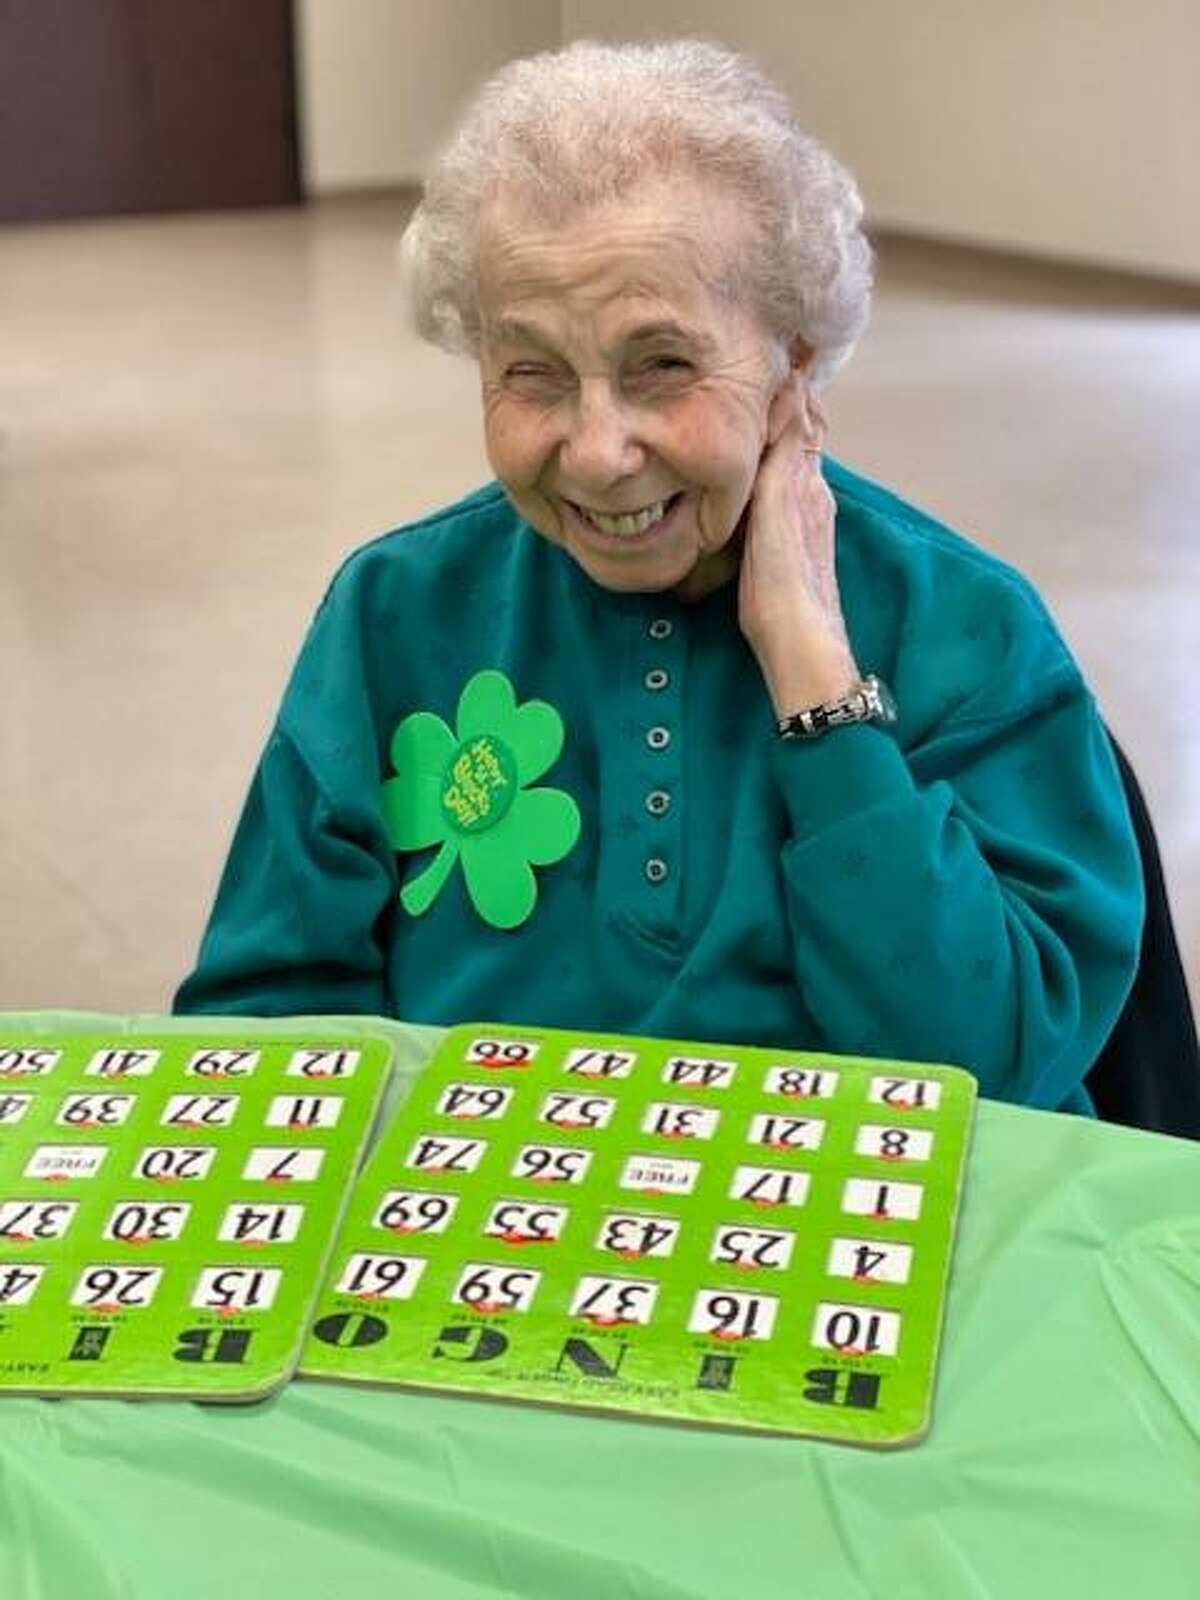 The Conroe Senior Center offers bingo on Tuesday and Thursday mornings. The center is located in Candy Cane Park behind the activity building and next to the tennis courts.